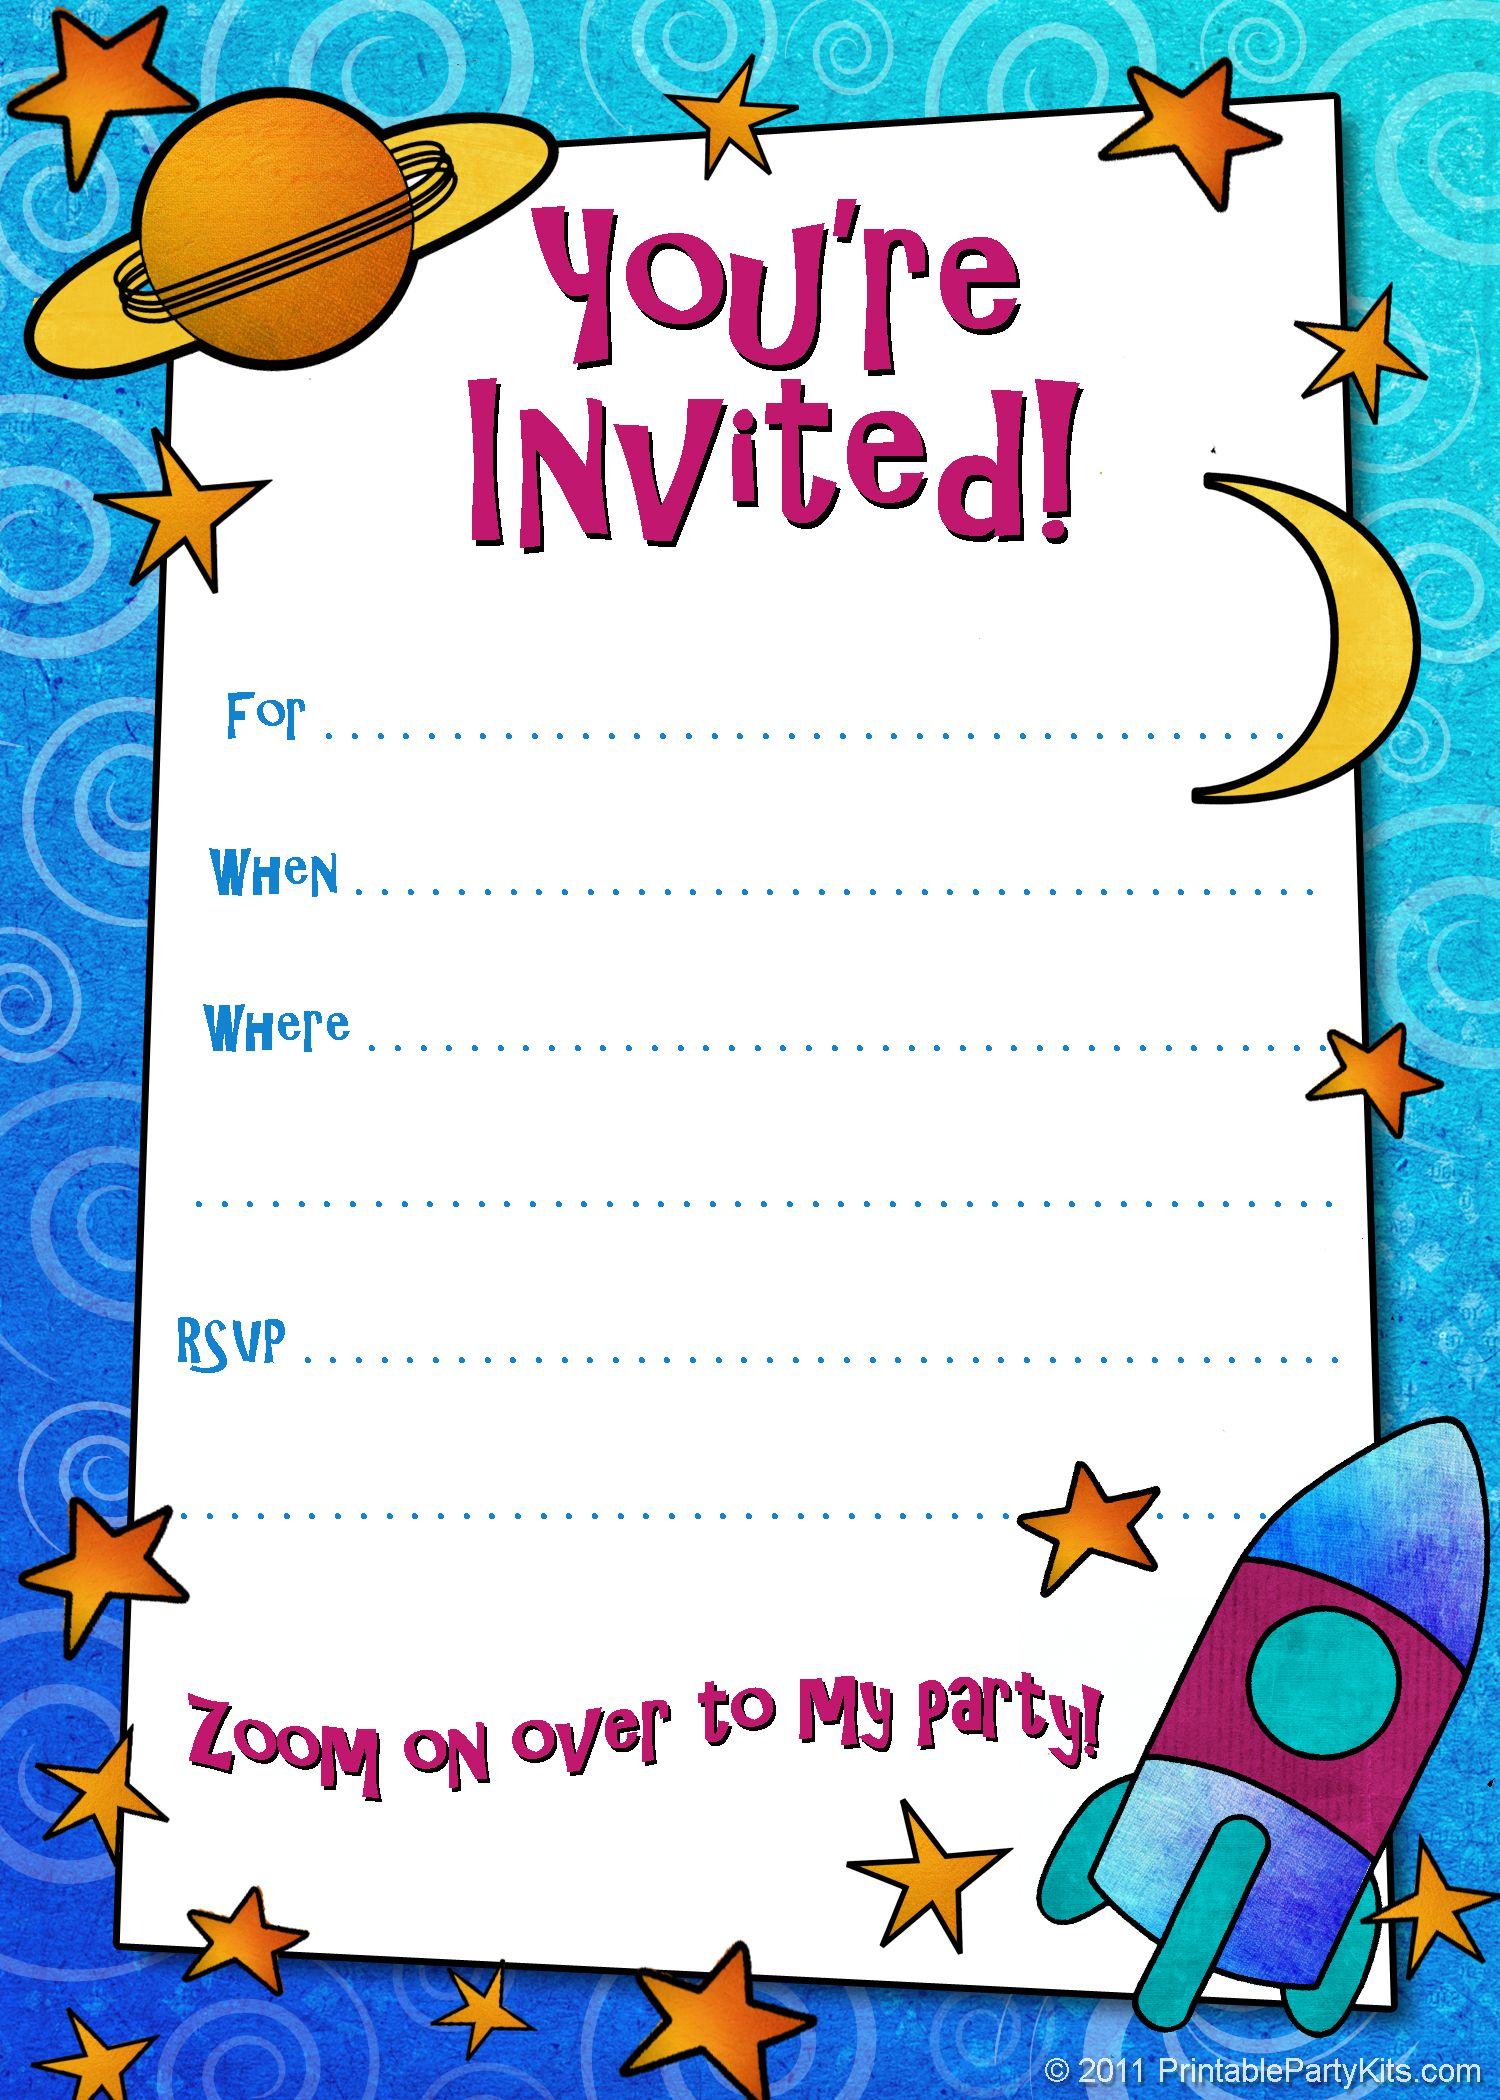 Invitation Card For Birthday Party Template Party Invite Template Invitation Card Birthday Birthday Invitation Templates